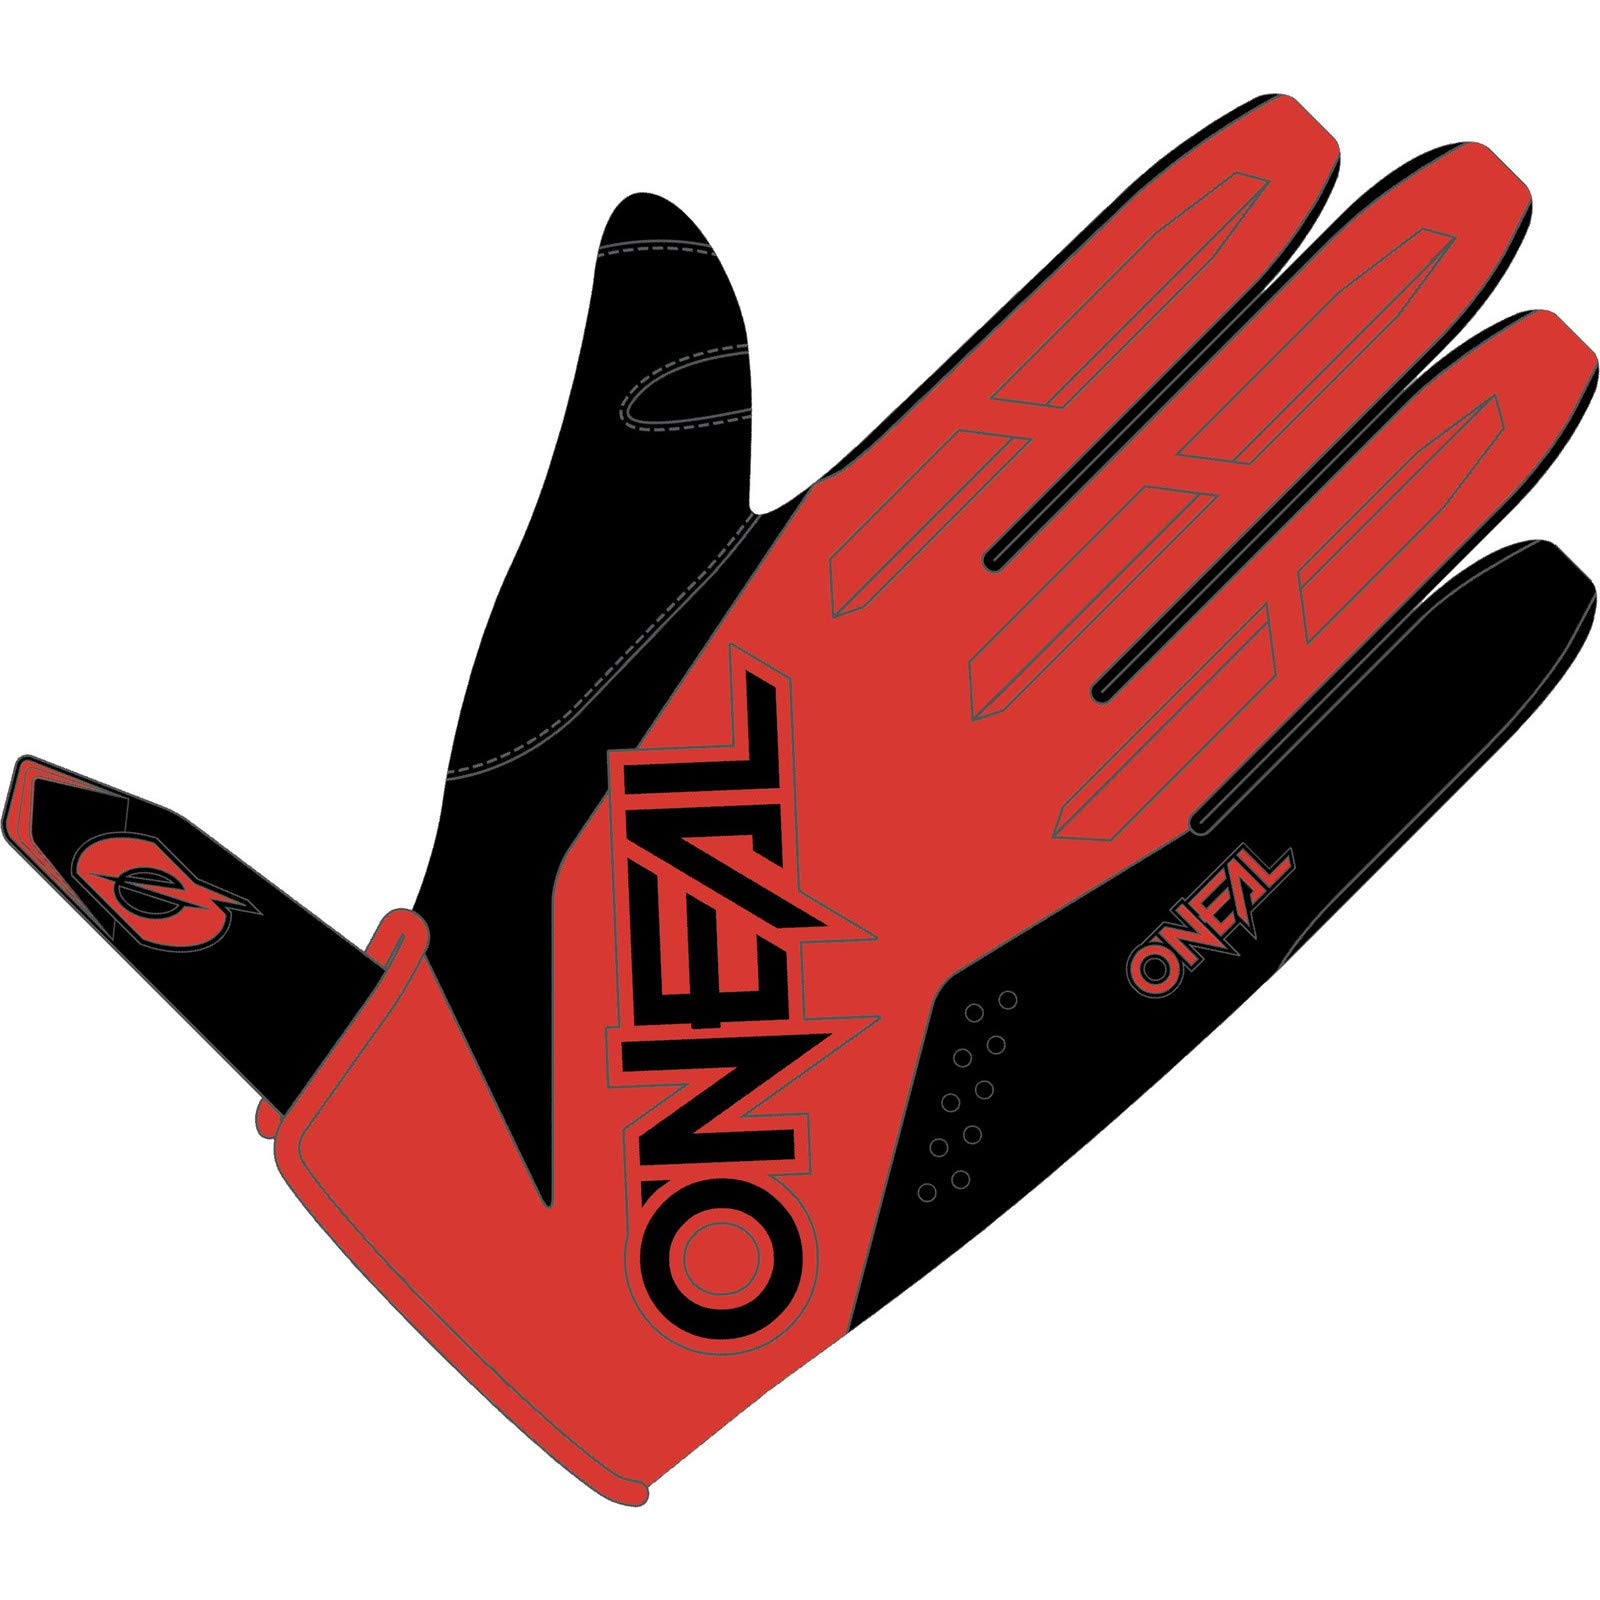 O'NEAL Oneal Element Youth Glove MX Motocross Protektoren, Unisex, Rot, M von O'NEAL